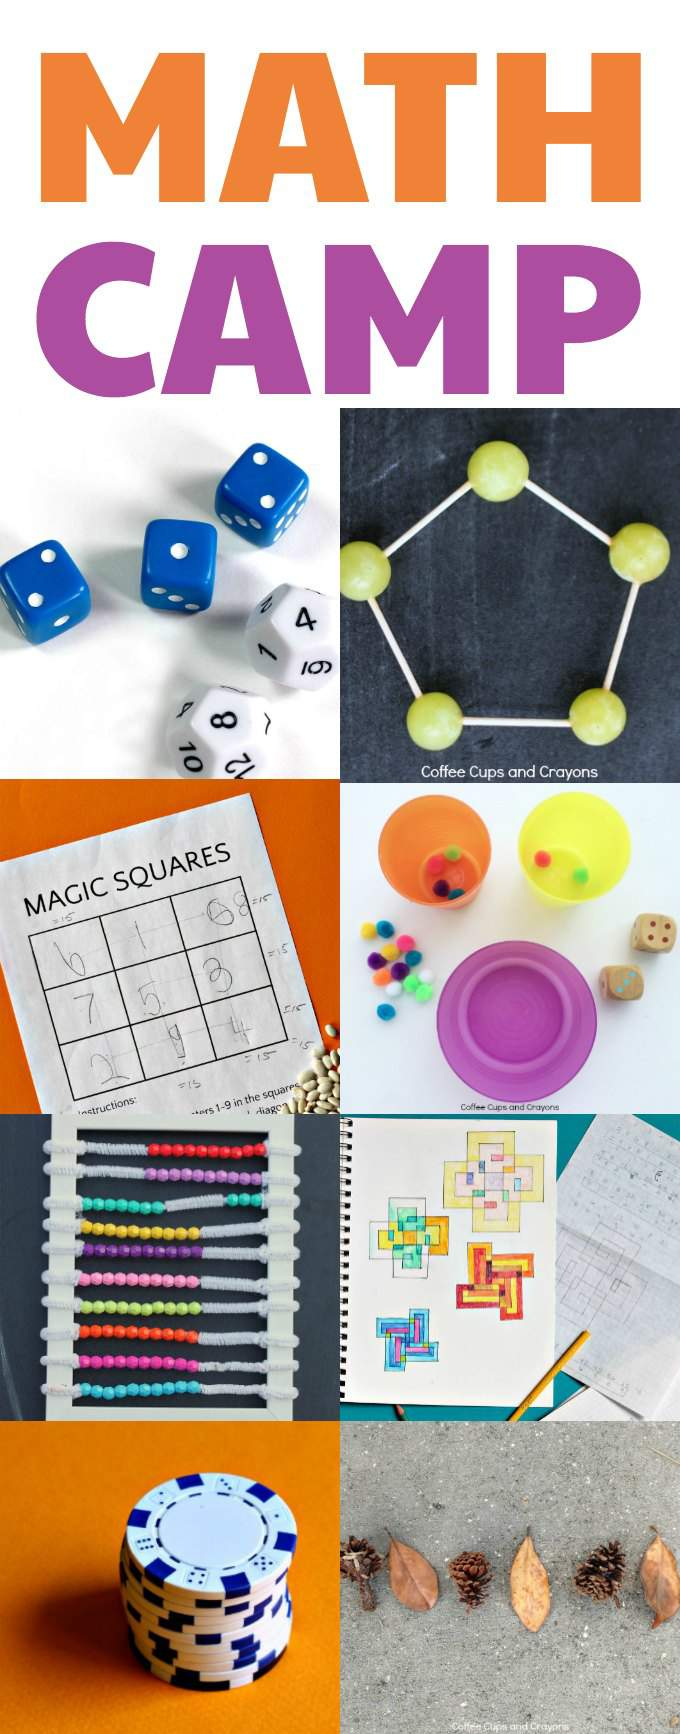 Do it yourself Math camp at home for kids.